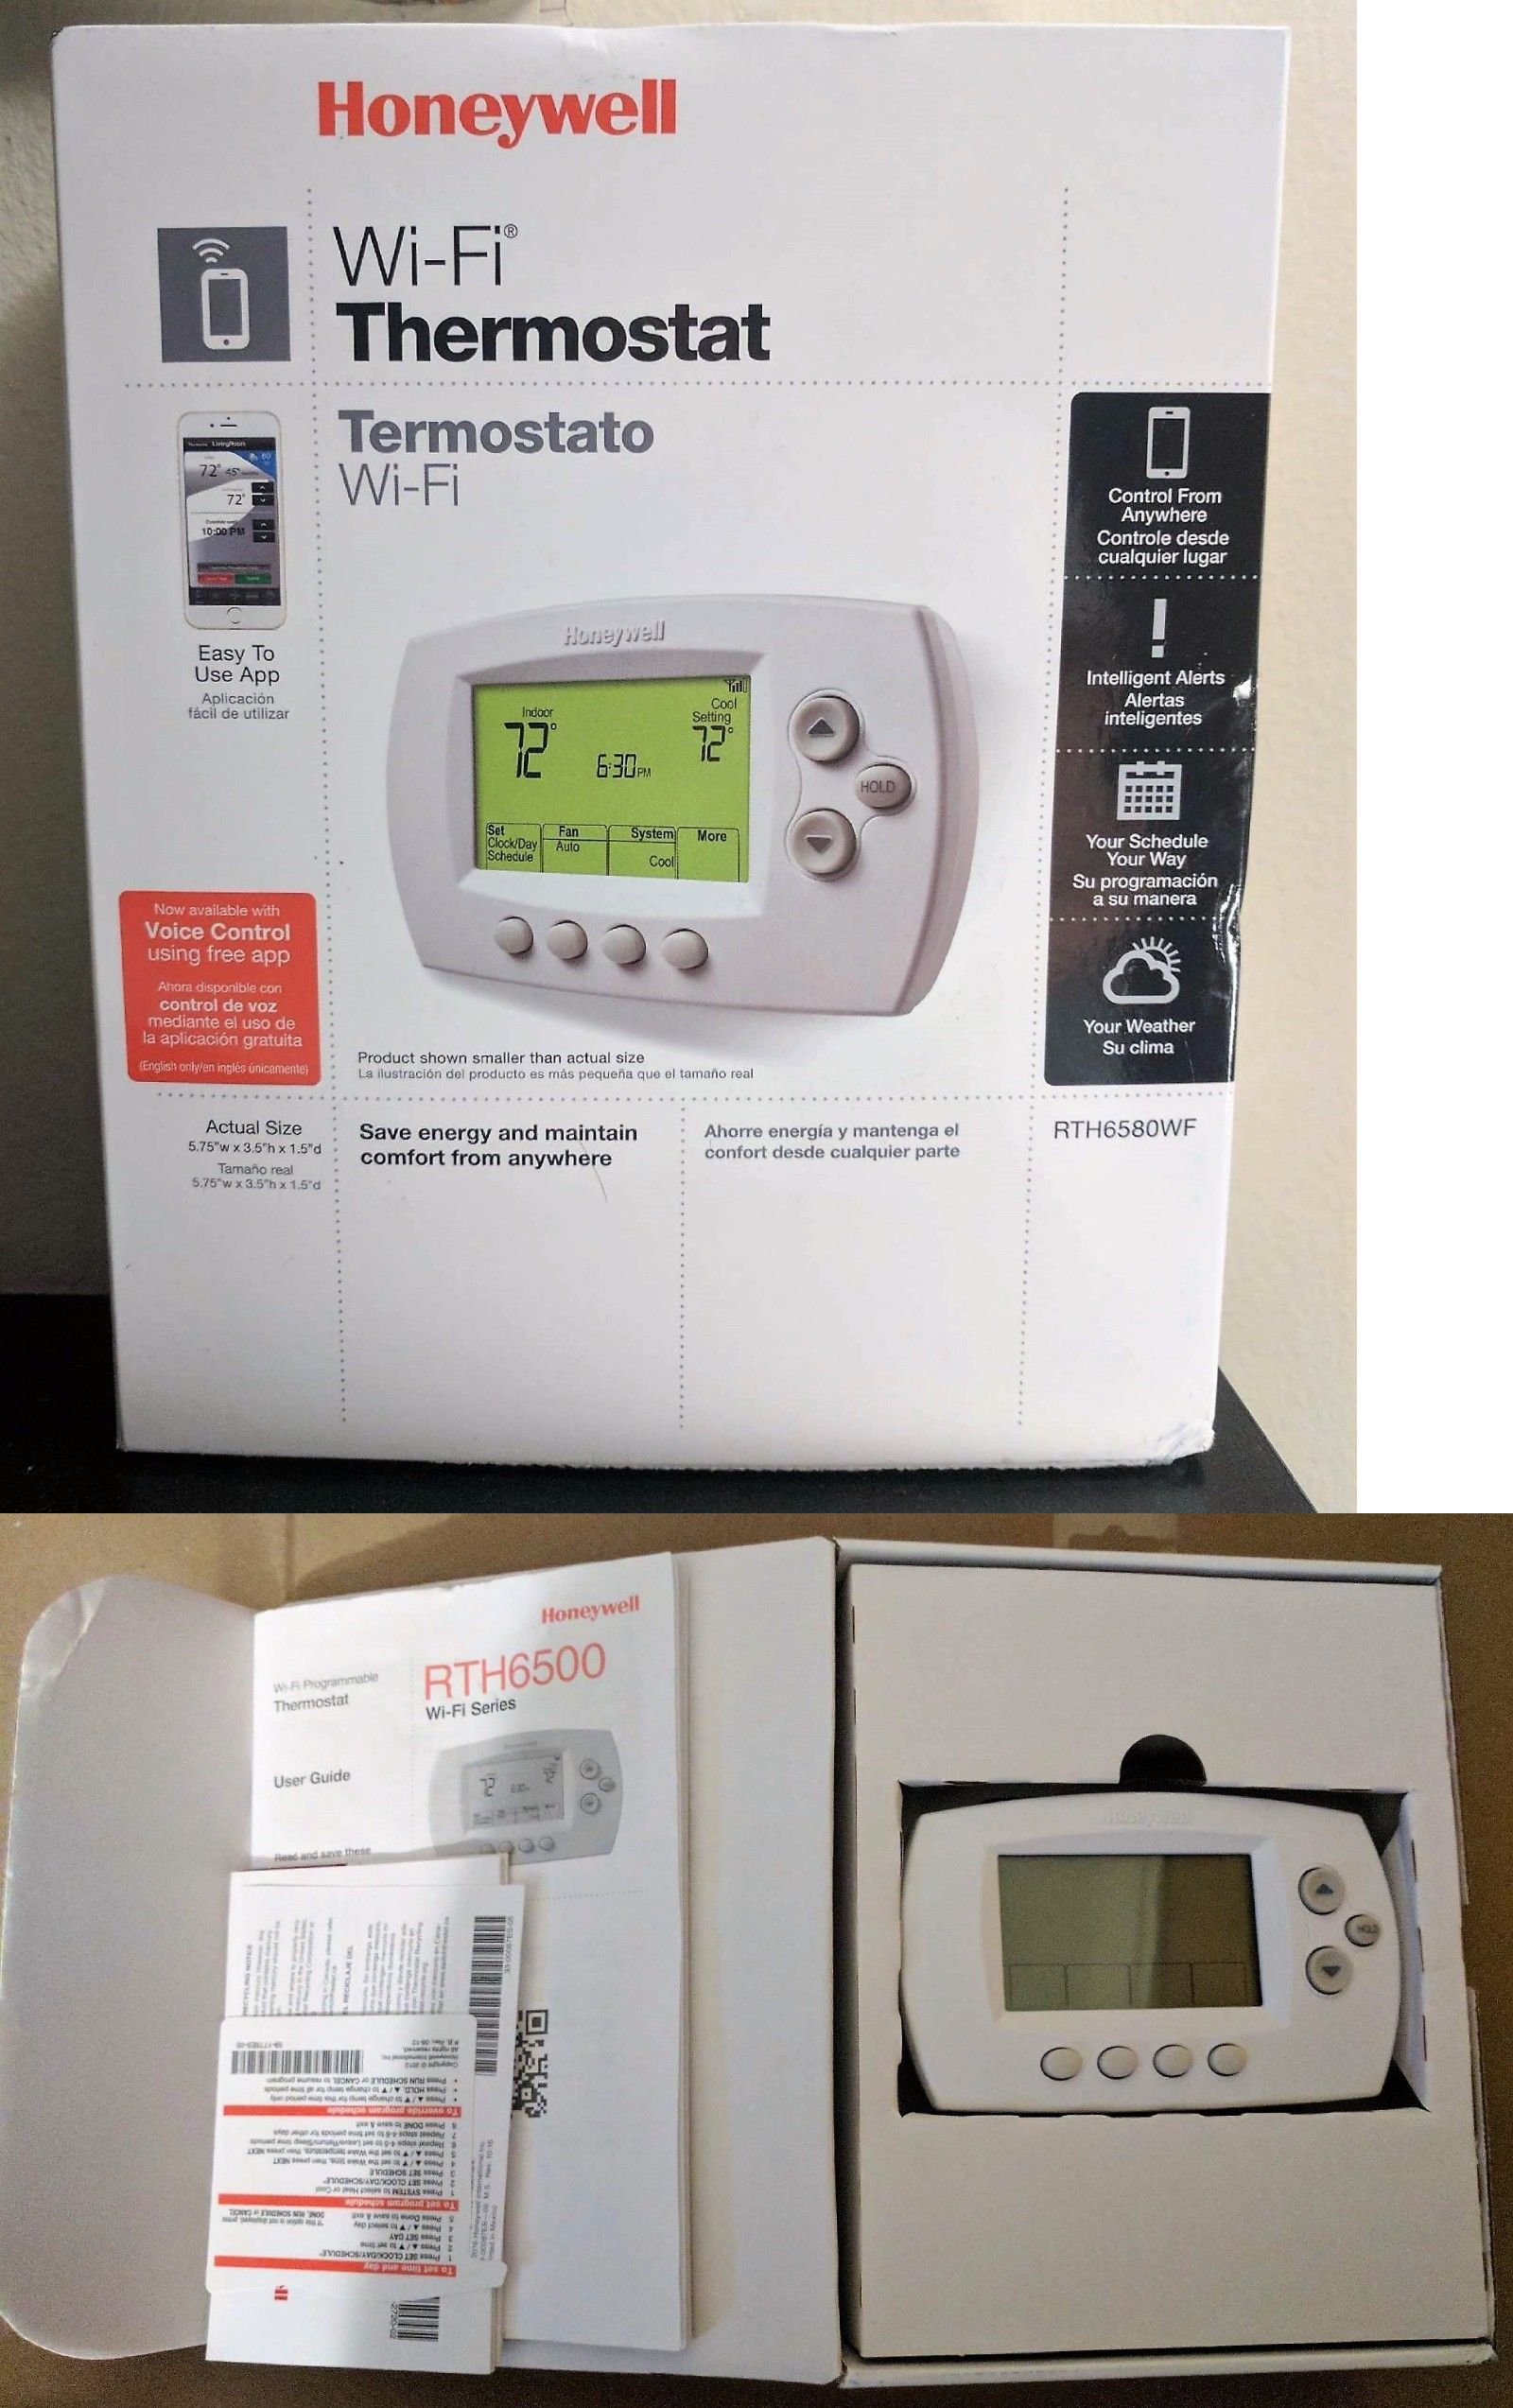 Programmable Thermostats 115949 Honeywell Rth6580wf Remote WiFi